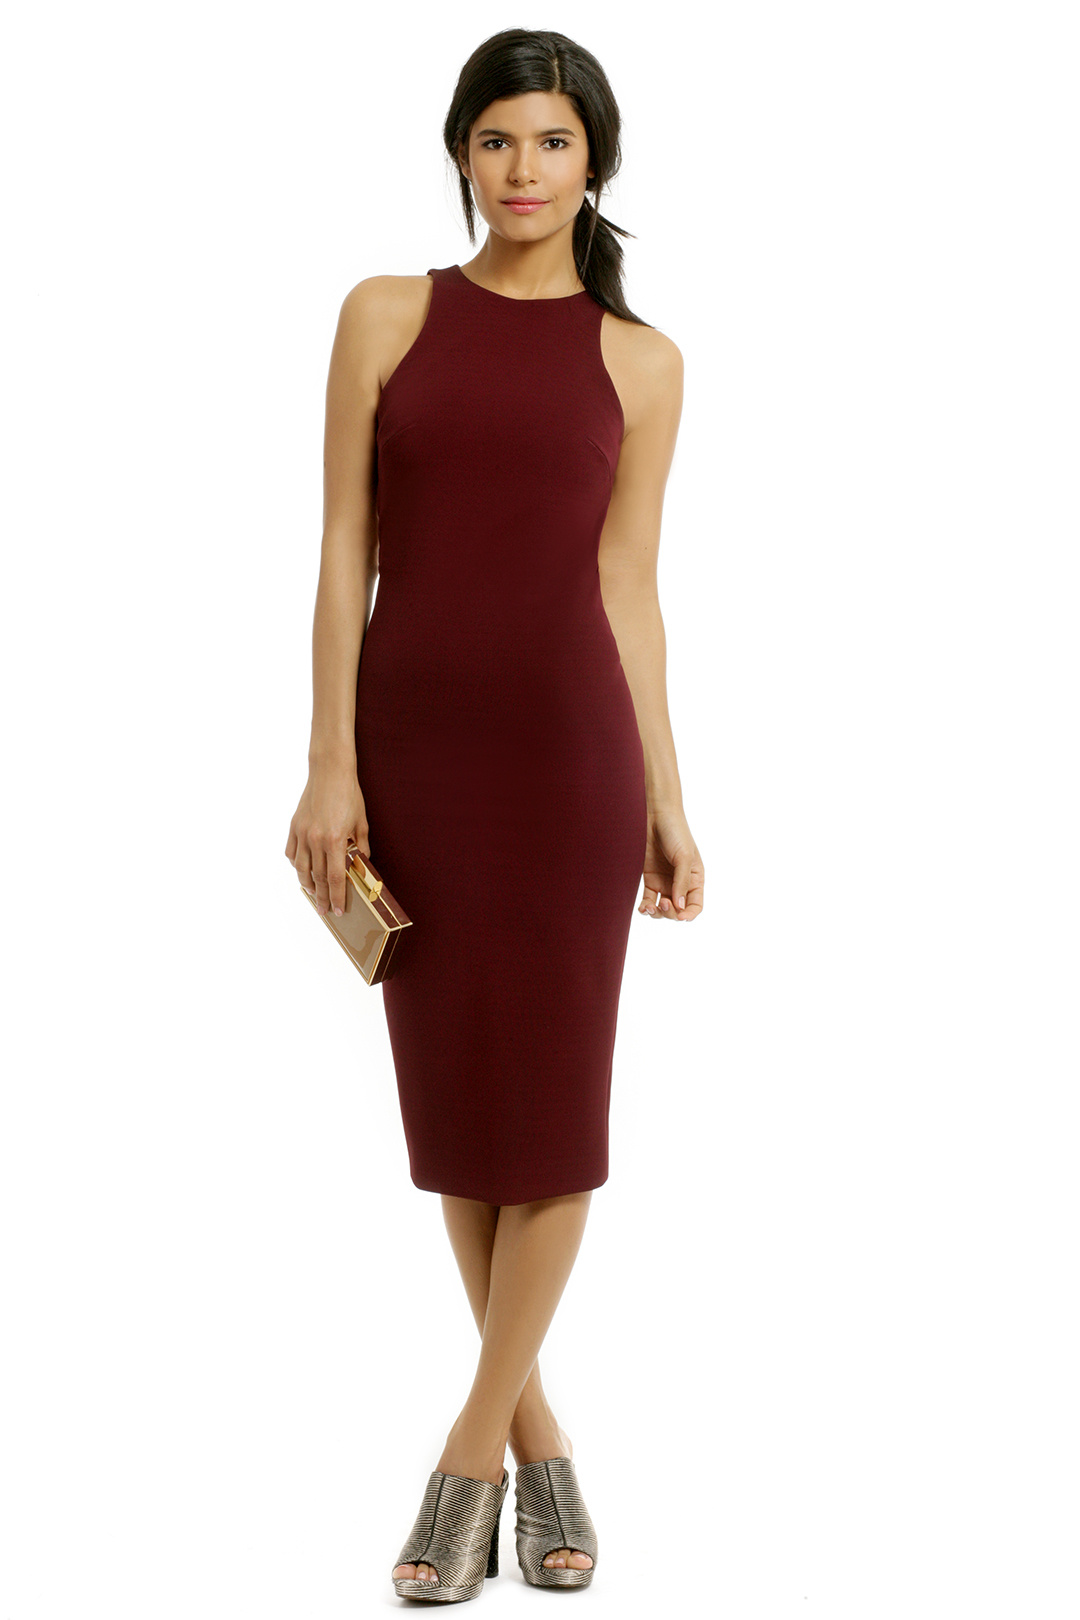 Cushnie Et Ochs Red Velvet Sheath